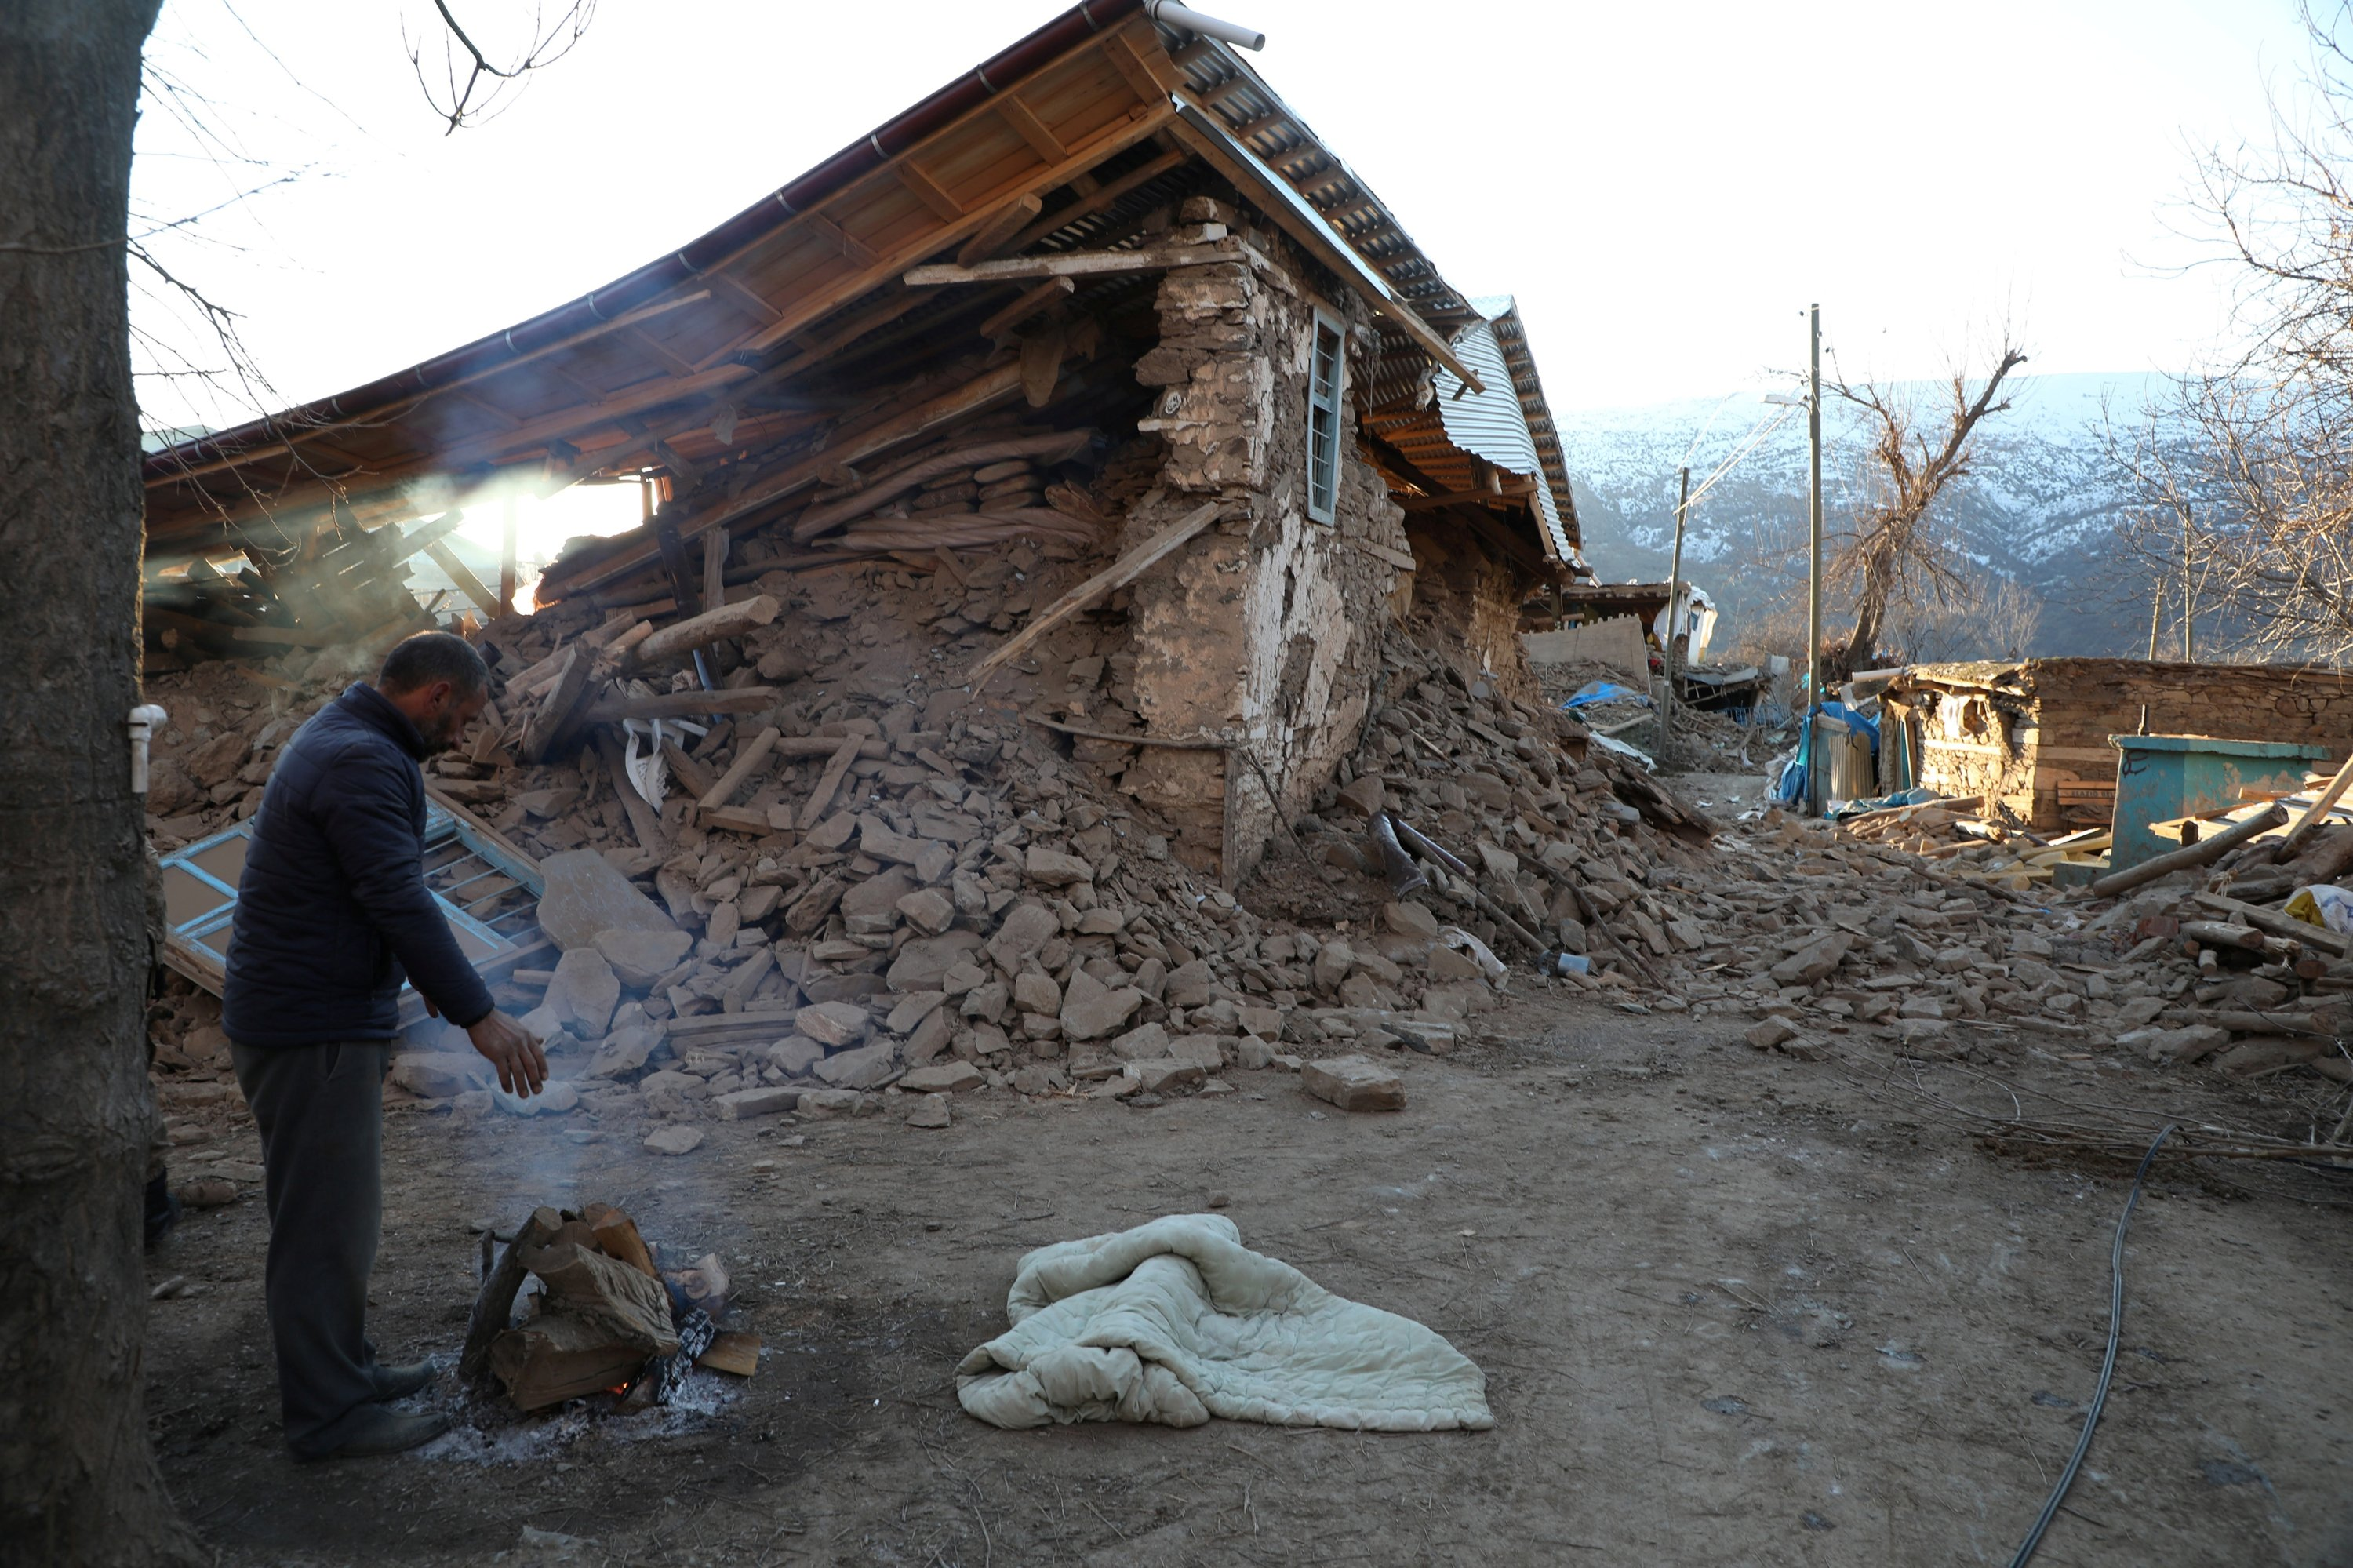 A villager stands next to his collapsed house after an earthquake in Sivrice near Elazığ, Turkey, Jan. 25, 2020. (Reuters Photo)